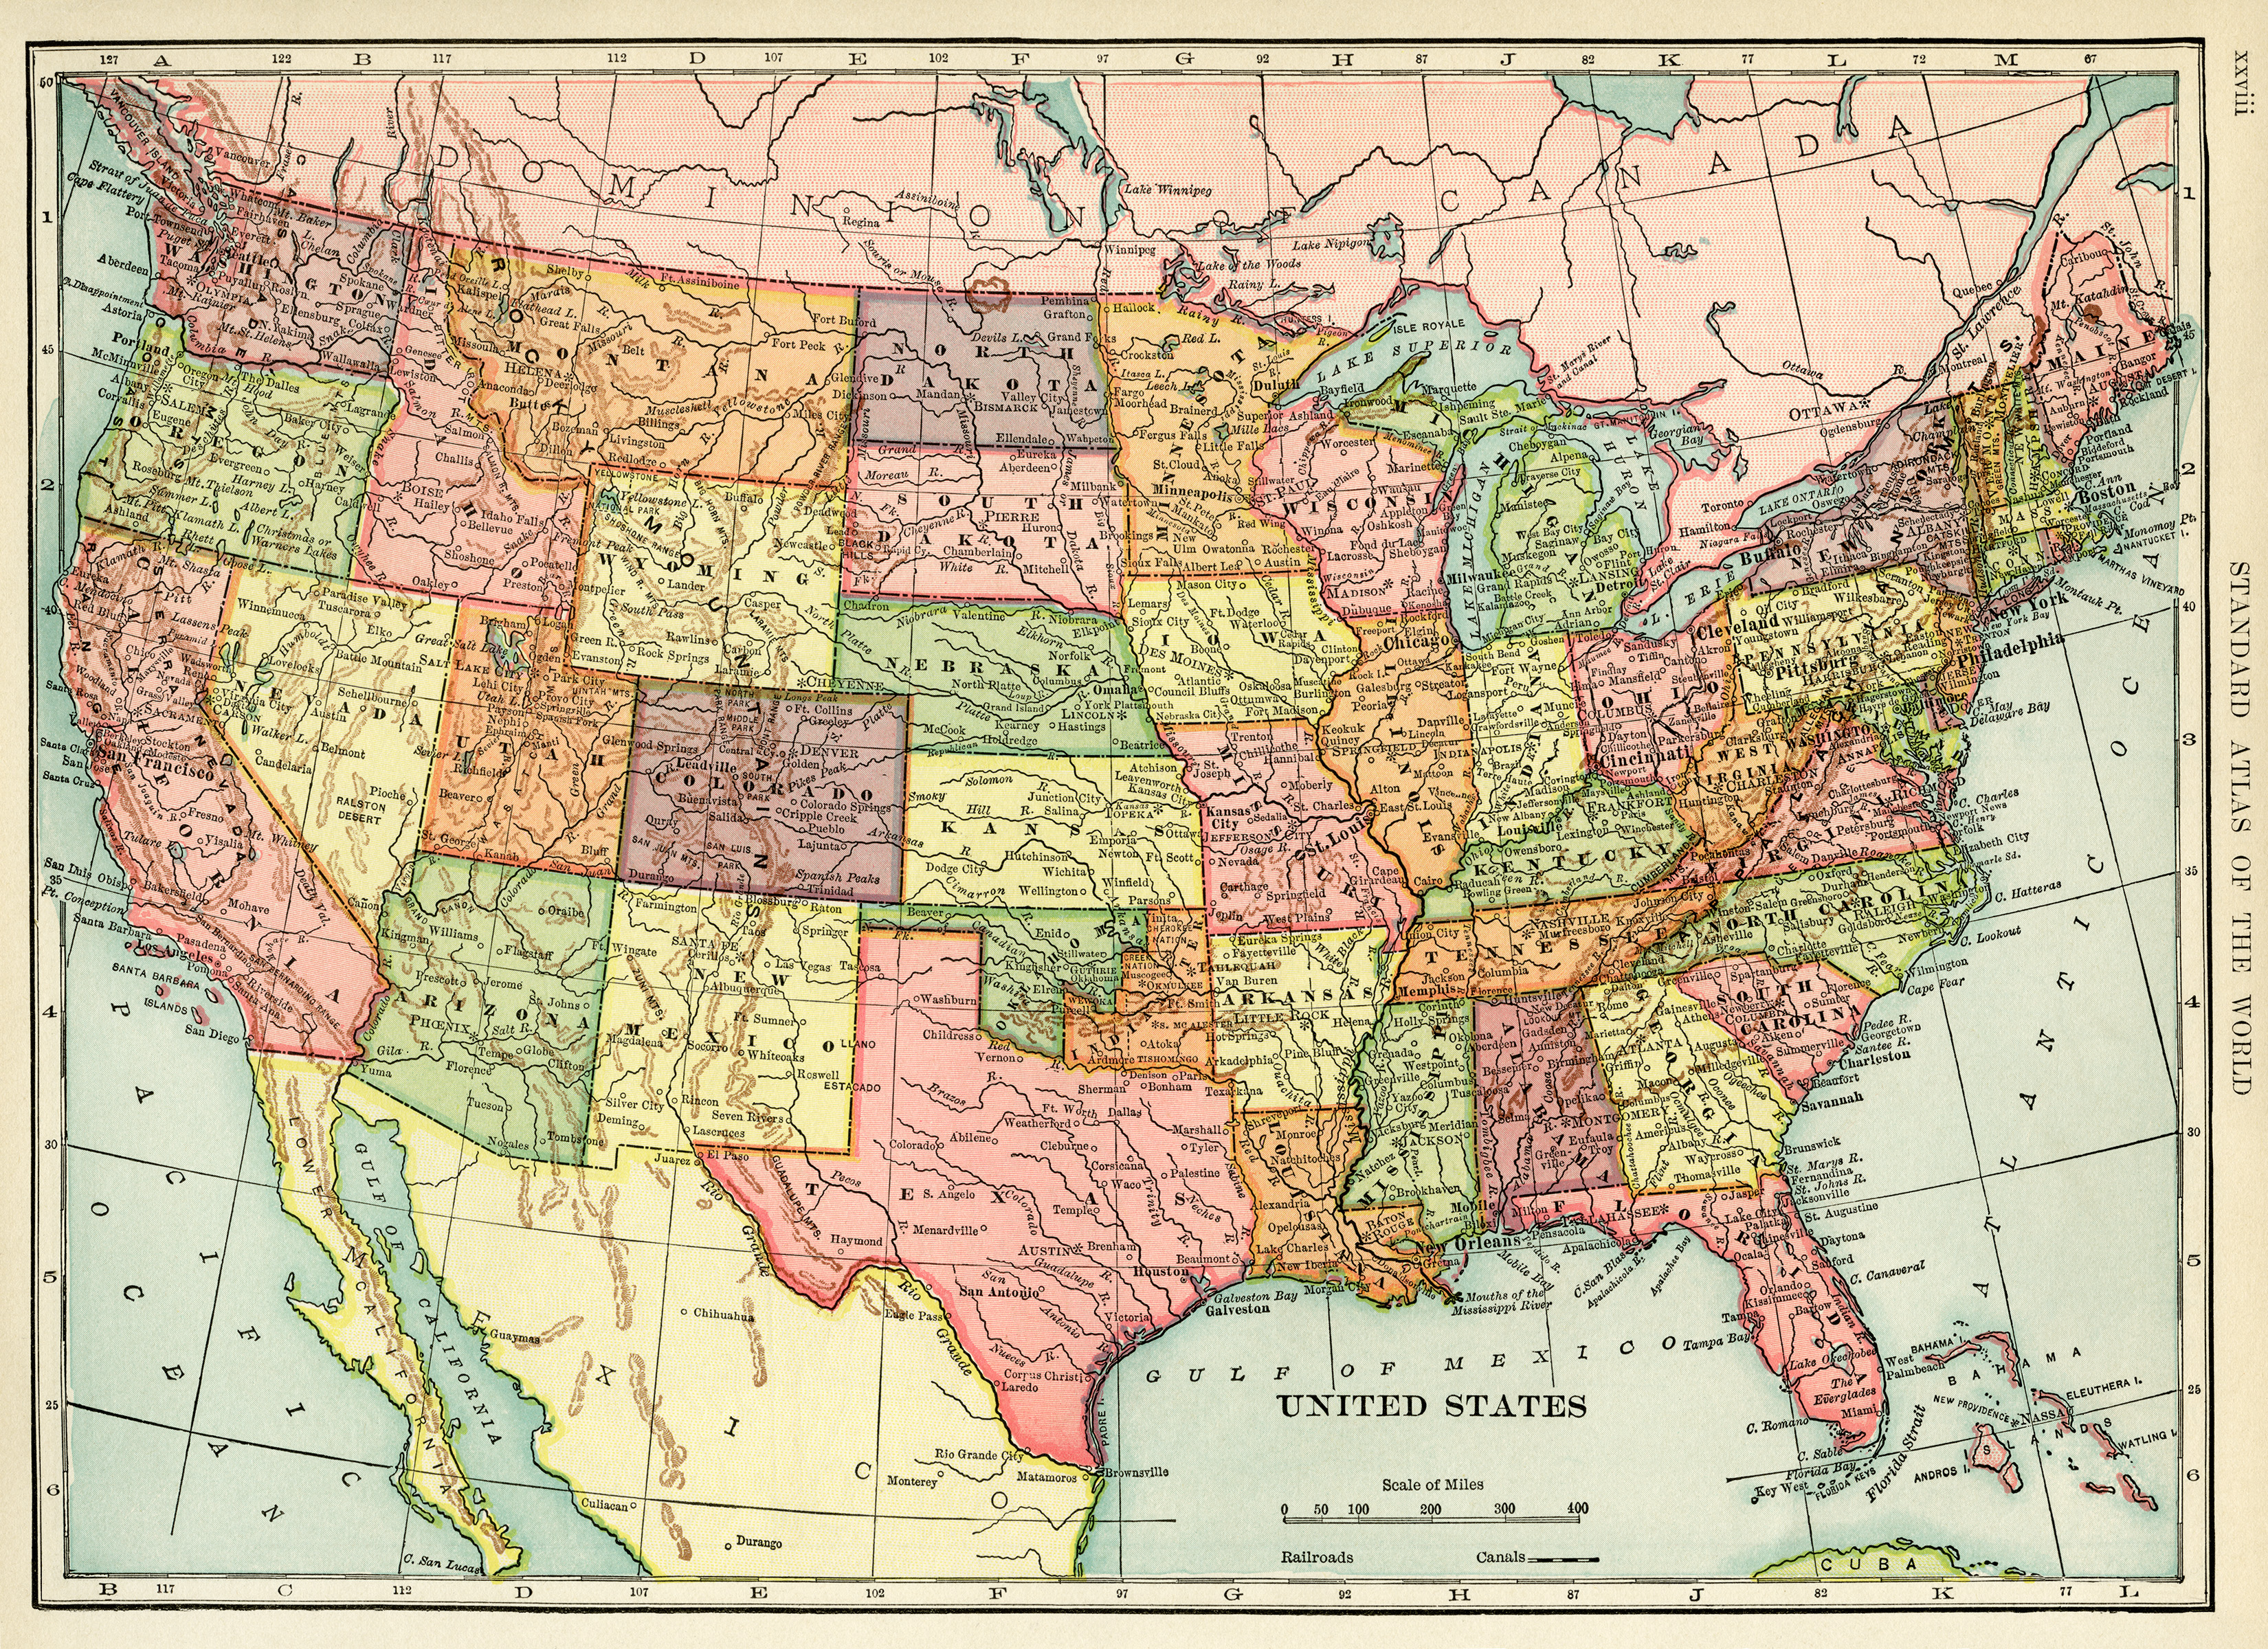 Maps Old Design Shop Blog - Give me the map of the united states